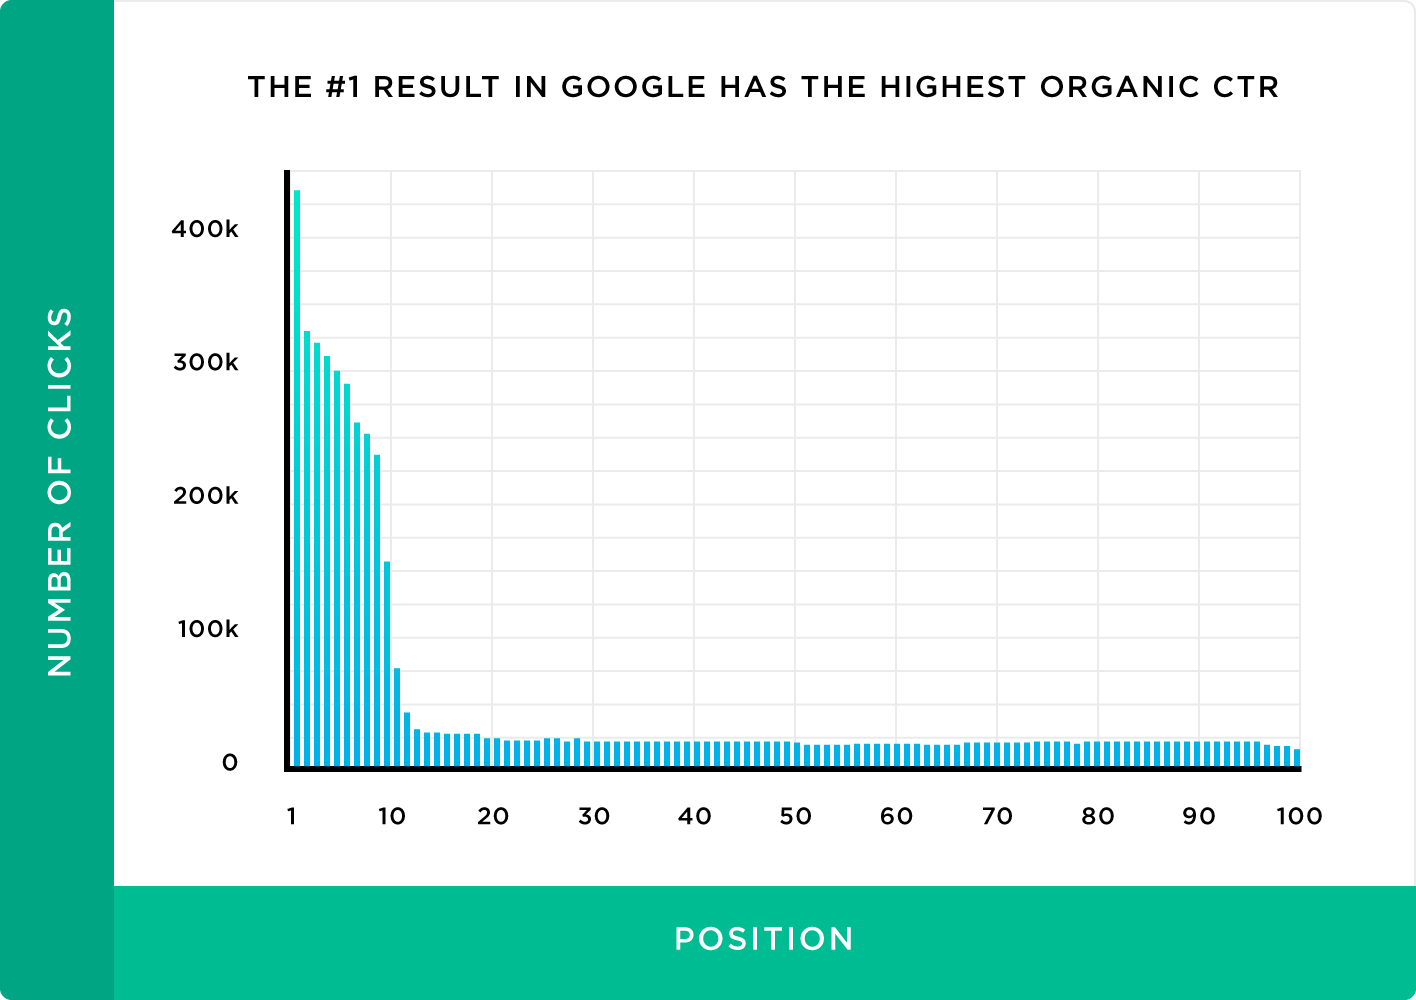 The number 1 result in Google has the highest organic CTR based on the number of clicks and position